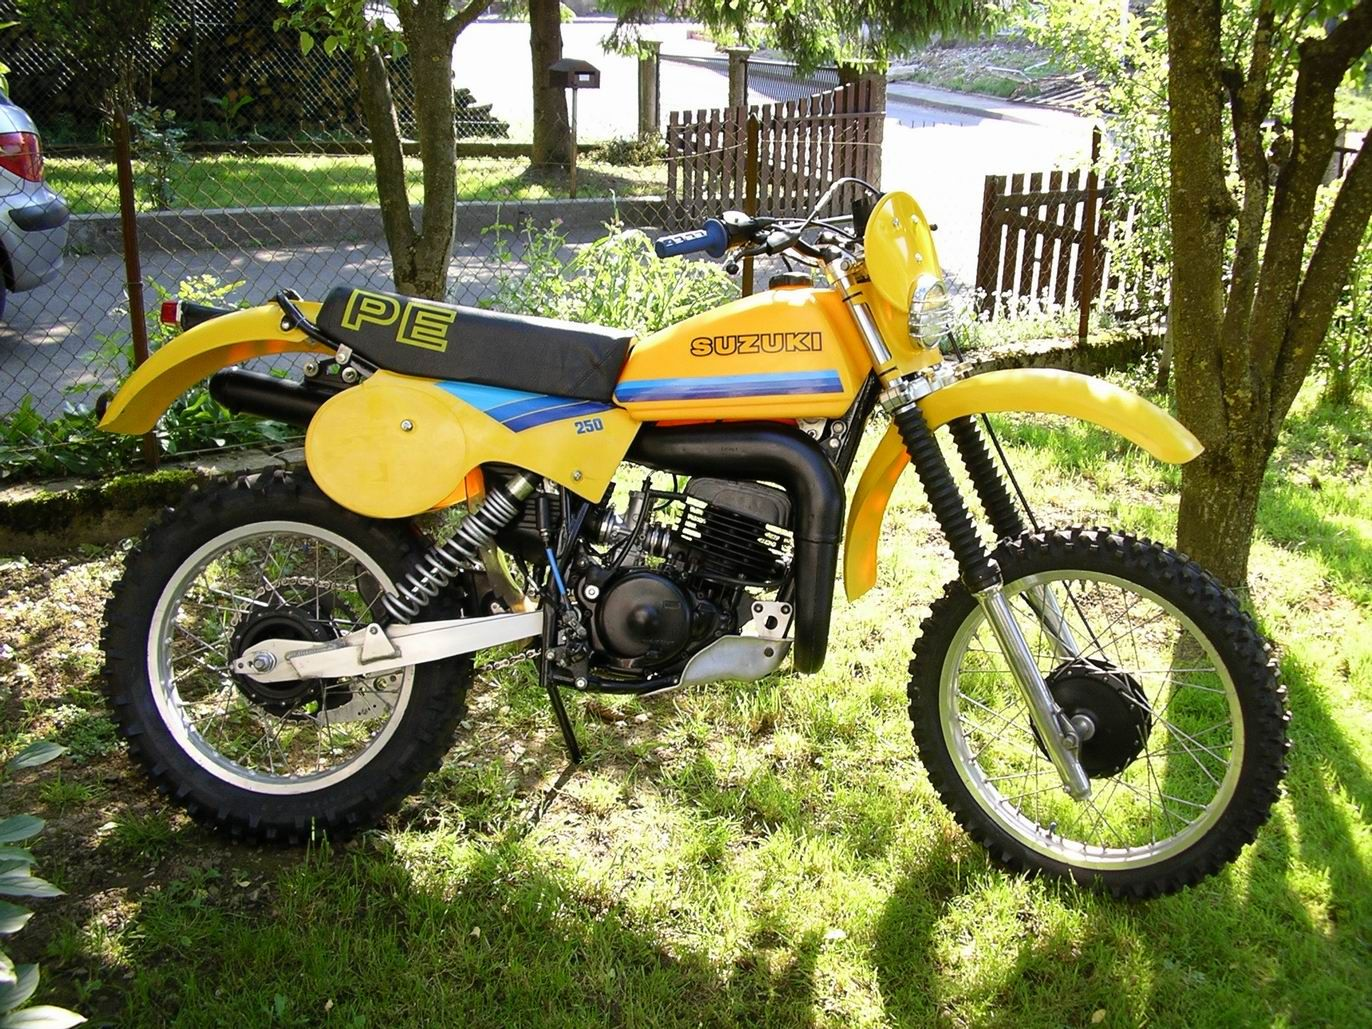 Suzuki 175 Pe Great Little Bike I Did A Poor Restoration Trail Rode It And Sold It At A Profit Enduro Motorcycle Suzuki Bikes Motocross Bikes